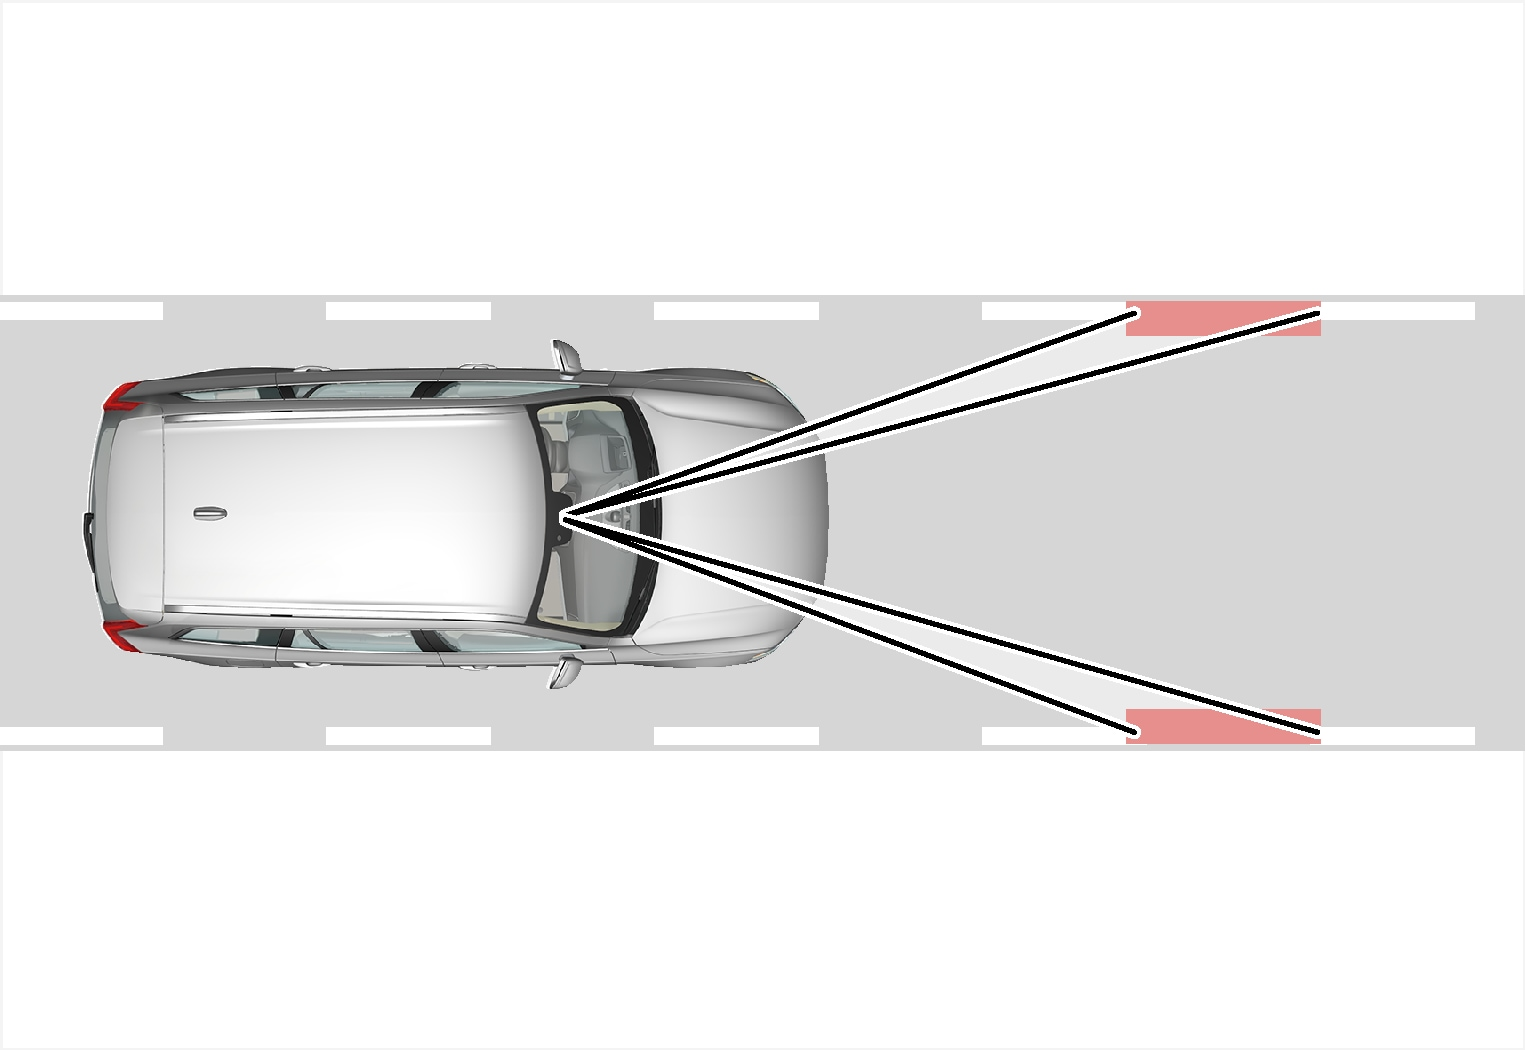 P5-1507-Driver Alert Control, the position of the car in the lane